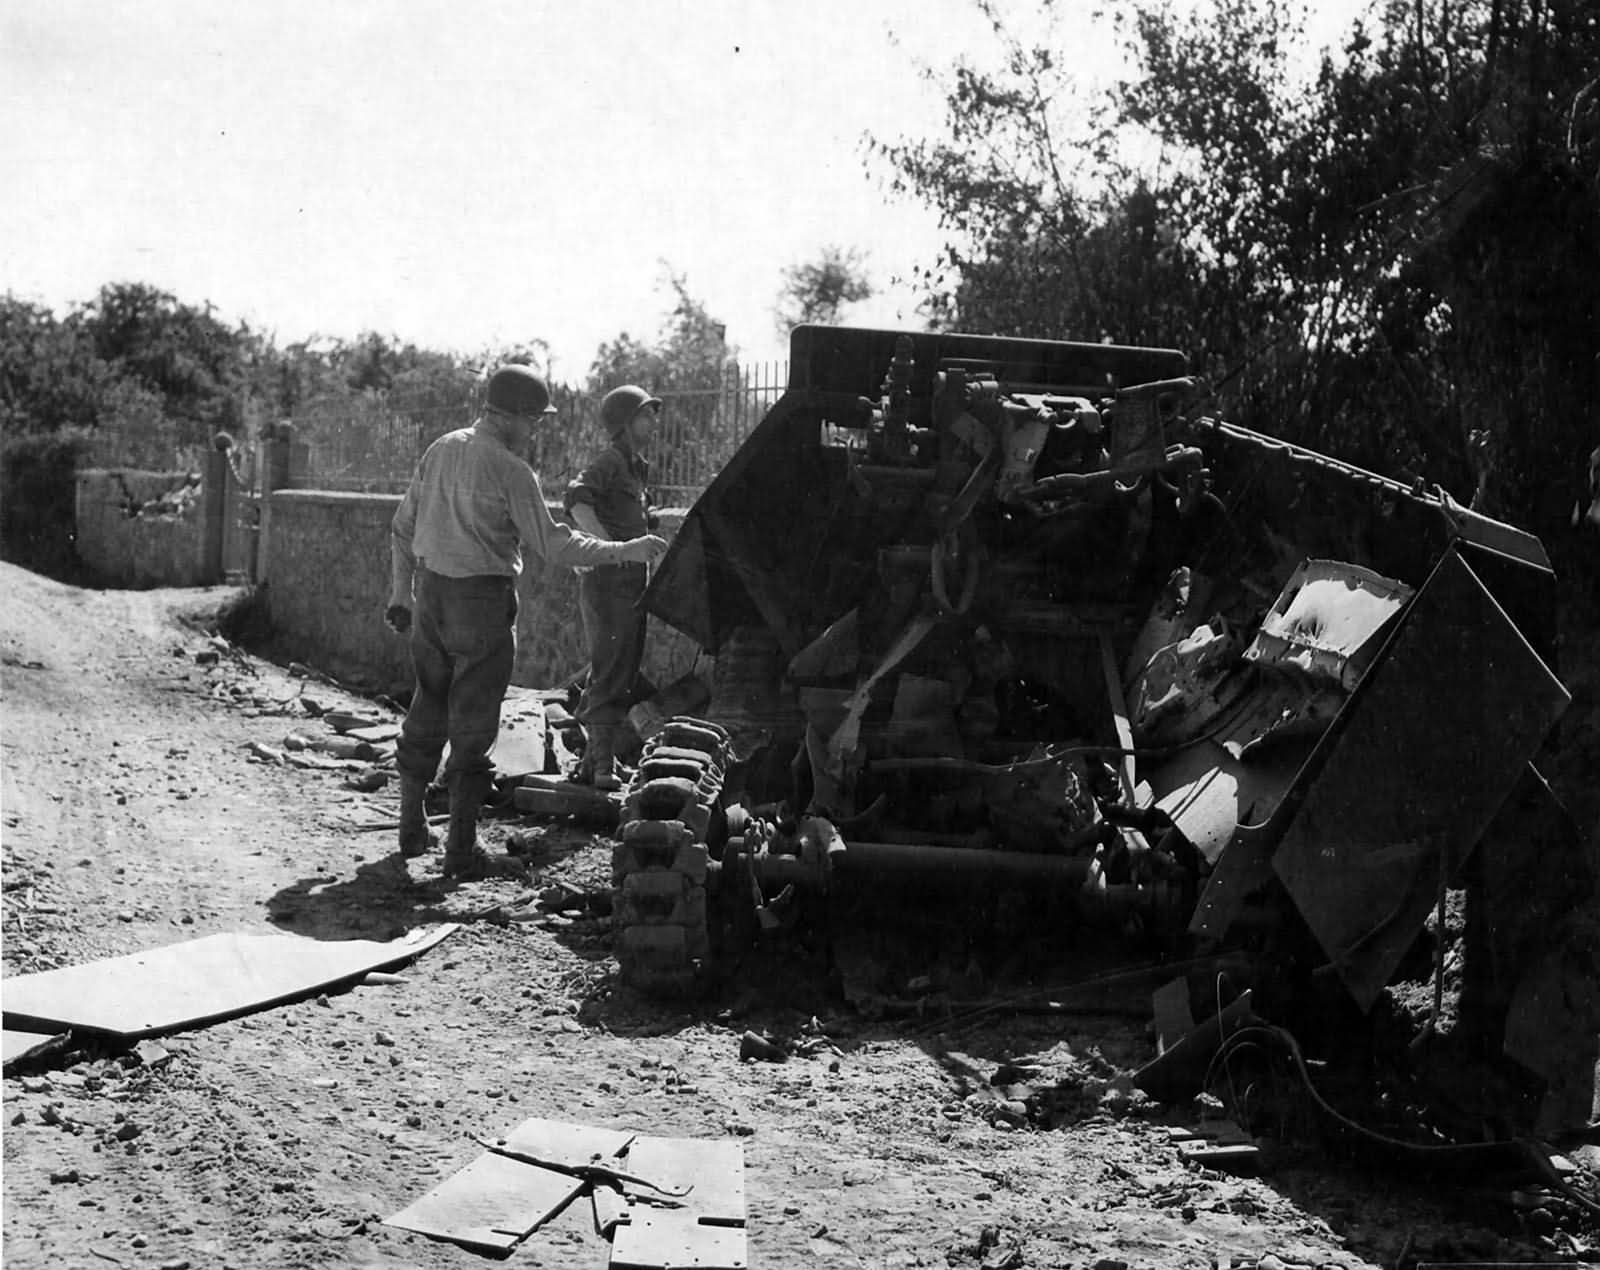 Destroyed SdKfz 251 Somewhere In France 12 August 1944